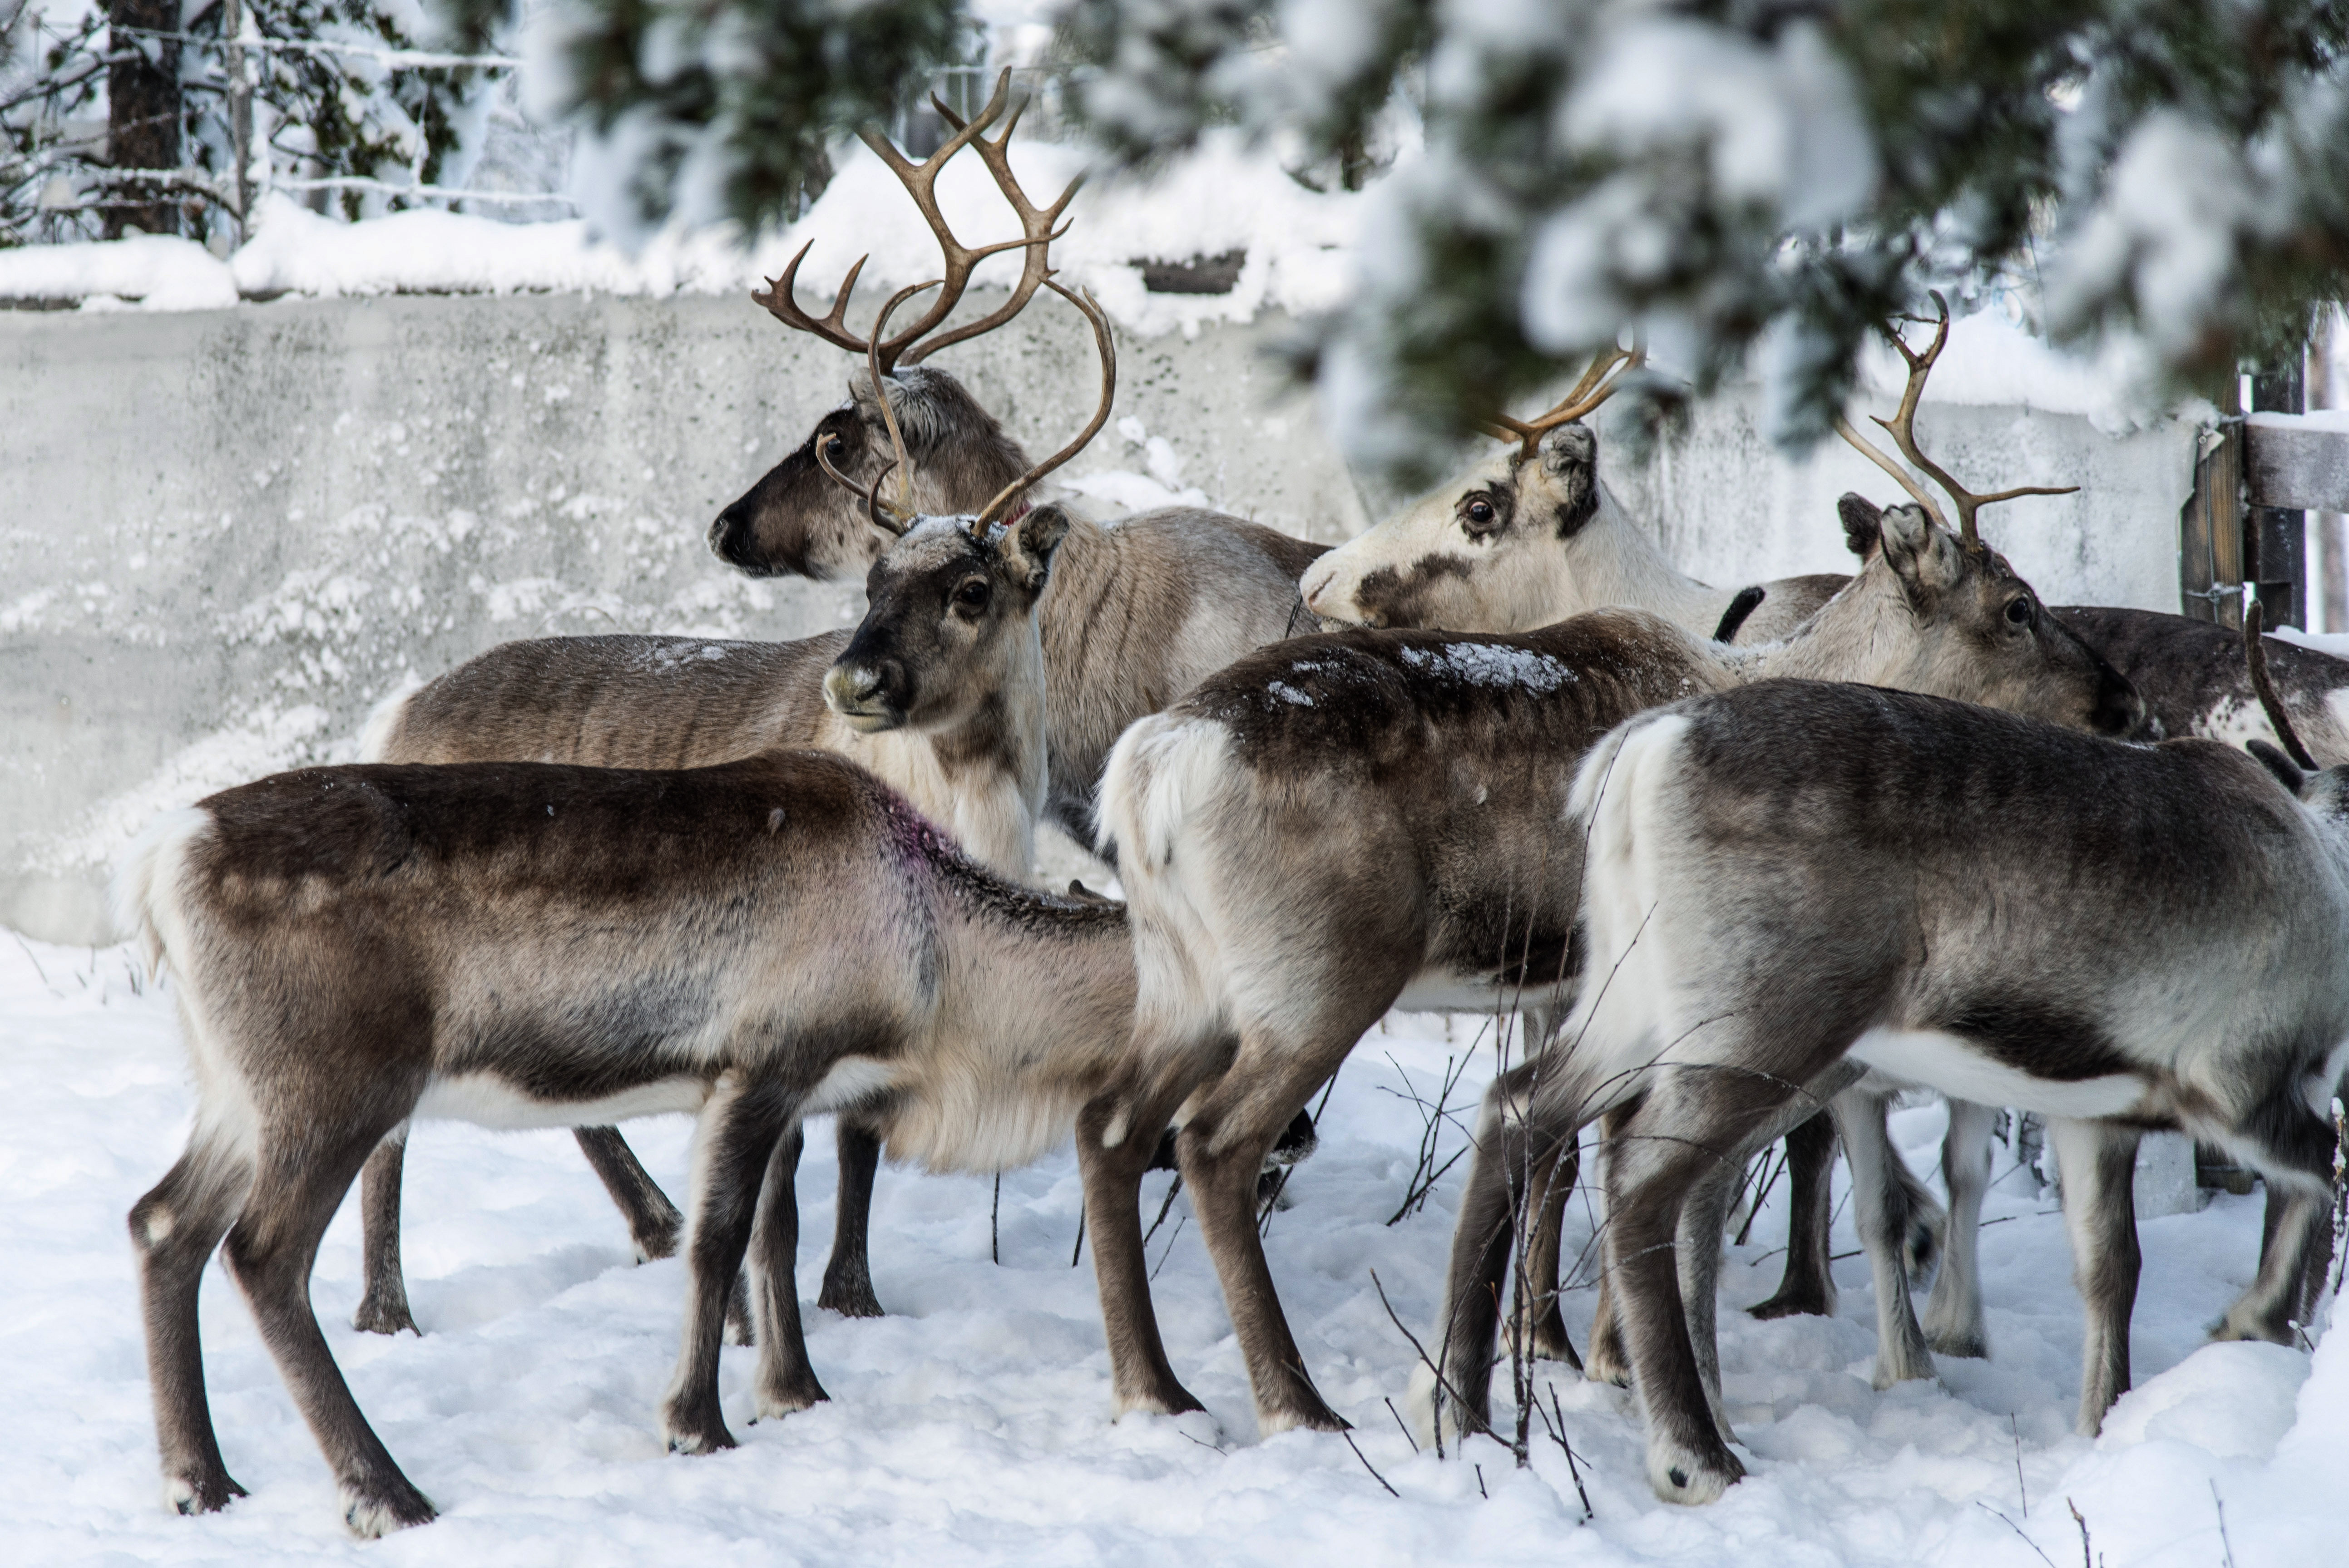 In this Saturday, Nov. 30. 2019 photo, reindeer in a corral at Lappeasuando near Kiruna await to be released onto the winter pastures. Global warming is threatening reindeer herding in Sweden's arctic region as unusual weather patterns jeopardize the migrating animals' grazing grounds as rainfall during the winter has led to thick layers of snowy ice that blocks access to food.